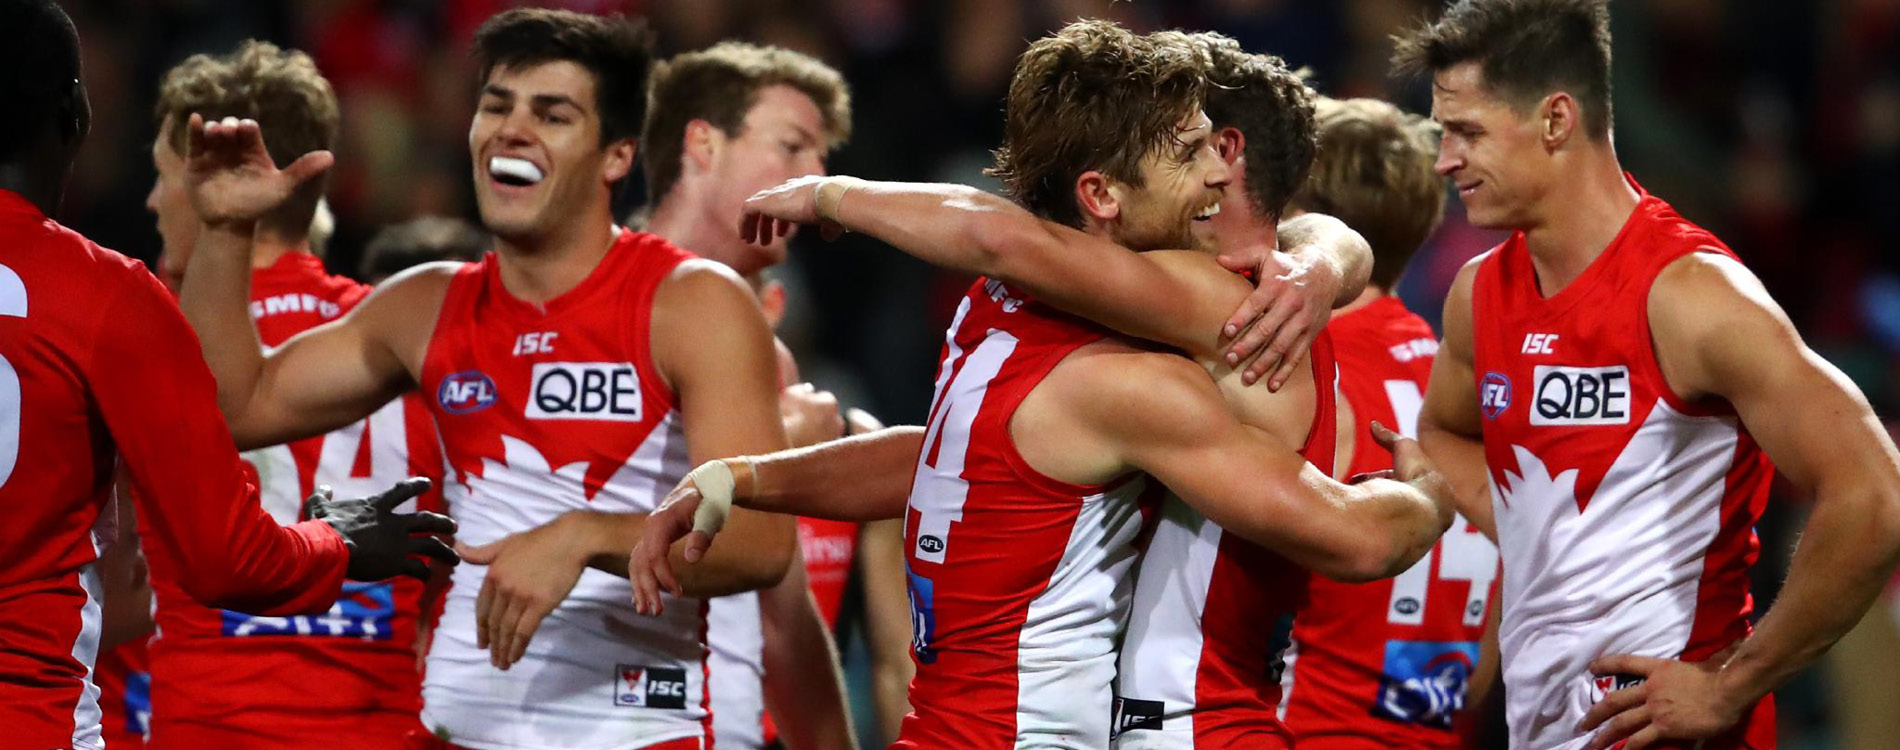 Sydney Swans approved friendly venue